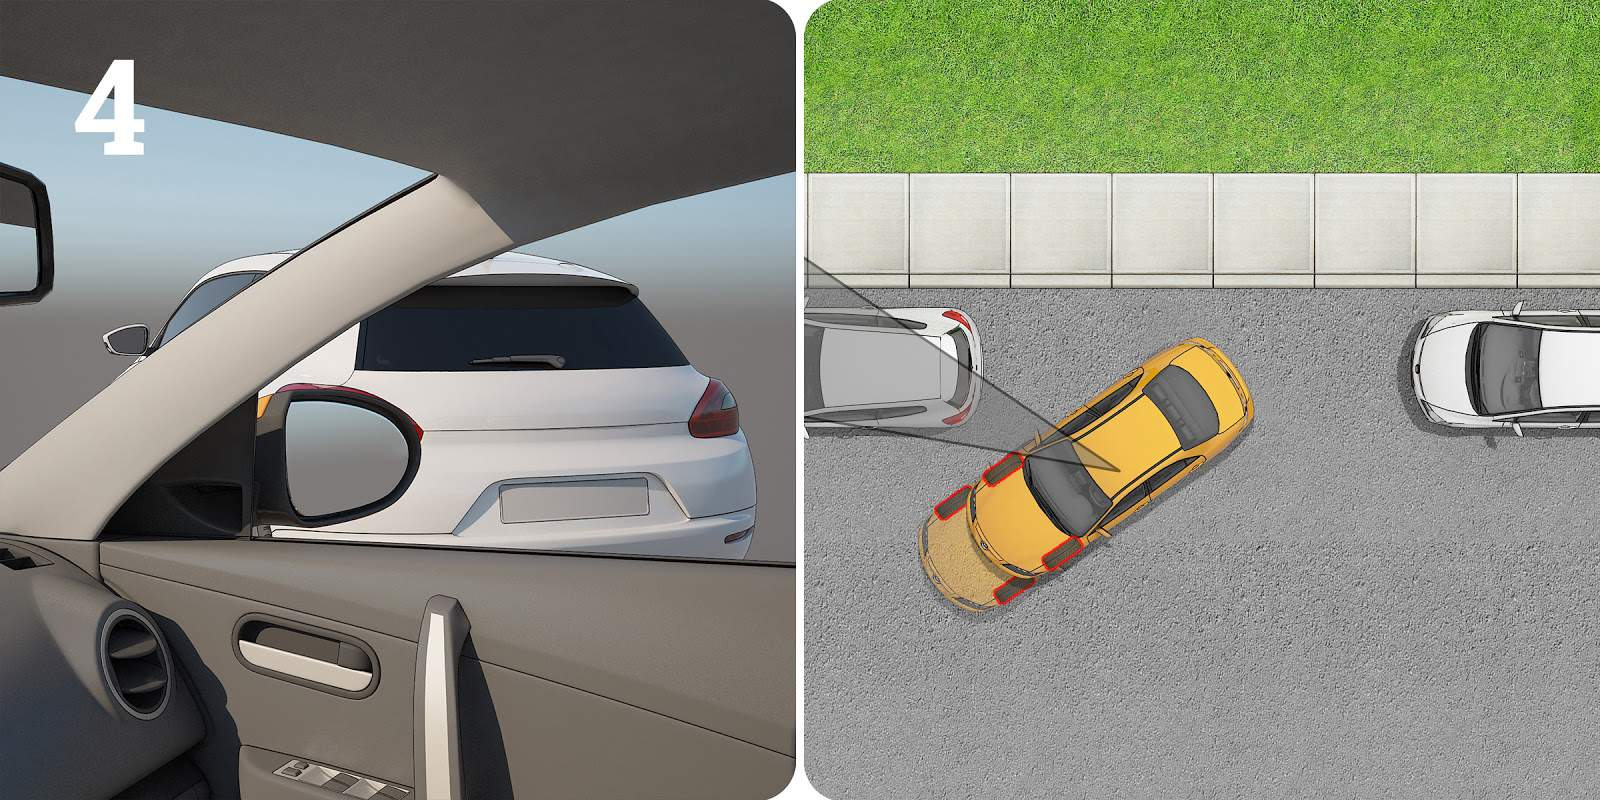 Parallel parking step 4: showing how to know when to turn your wheels straight